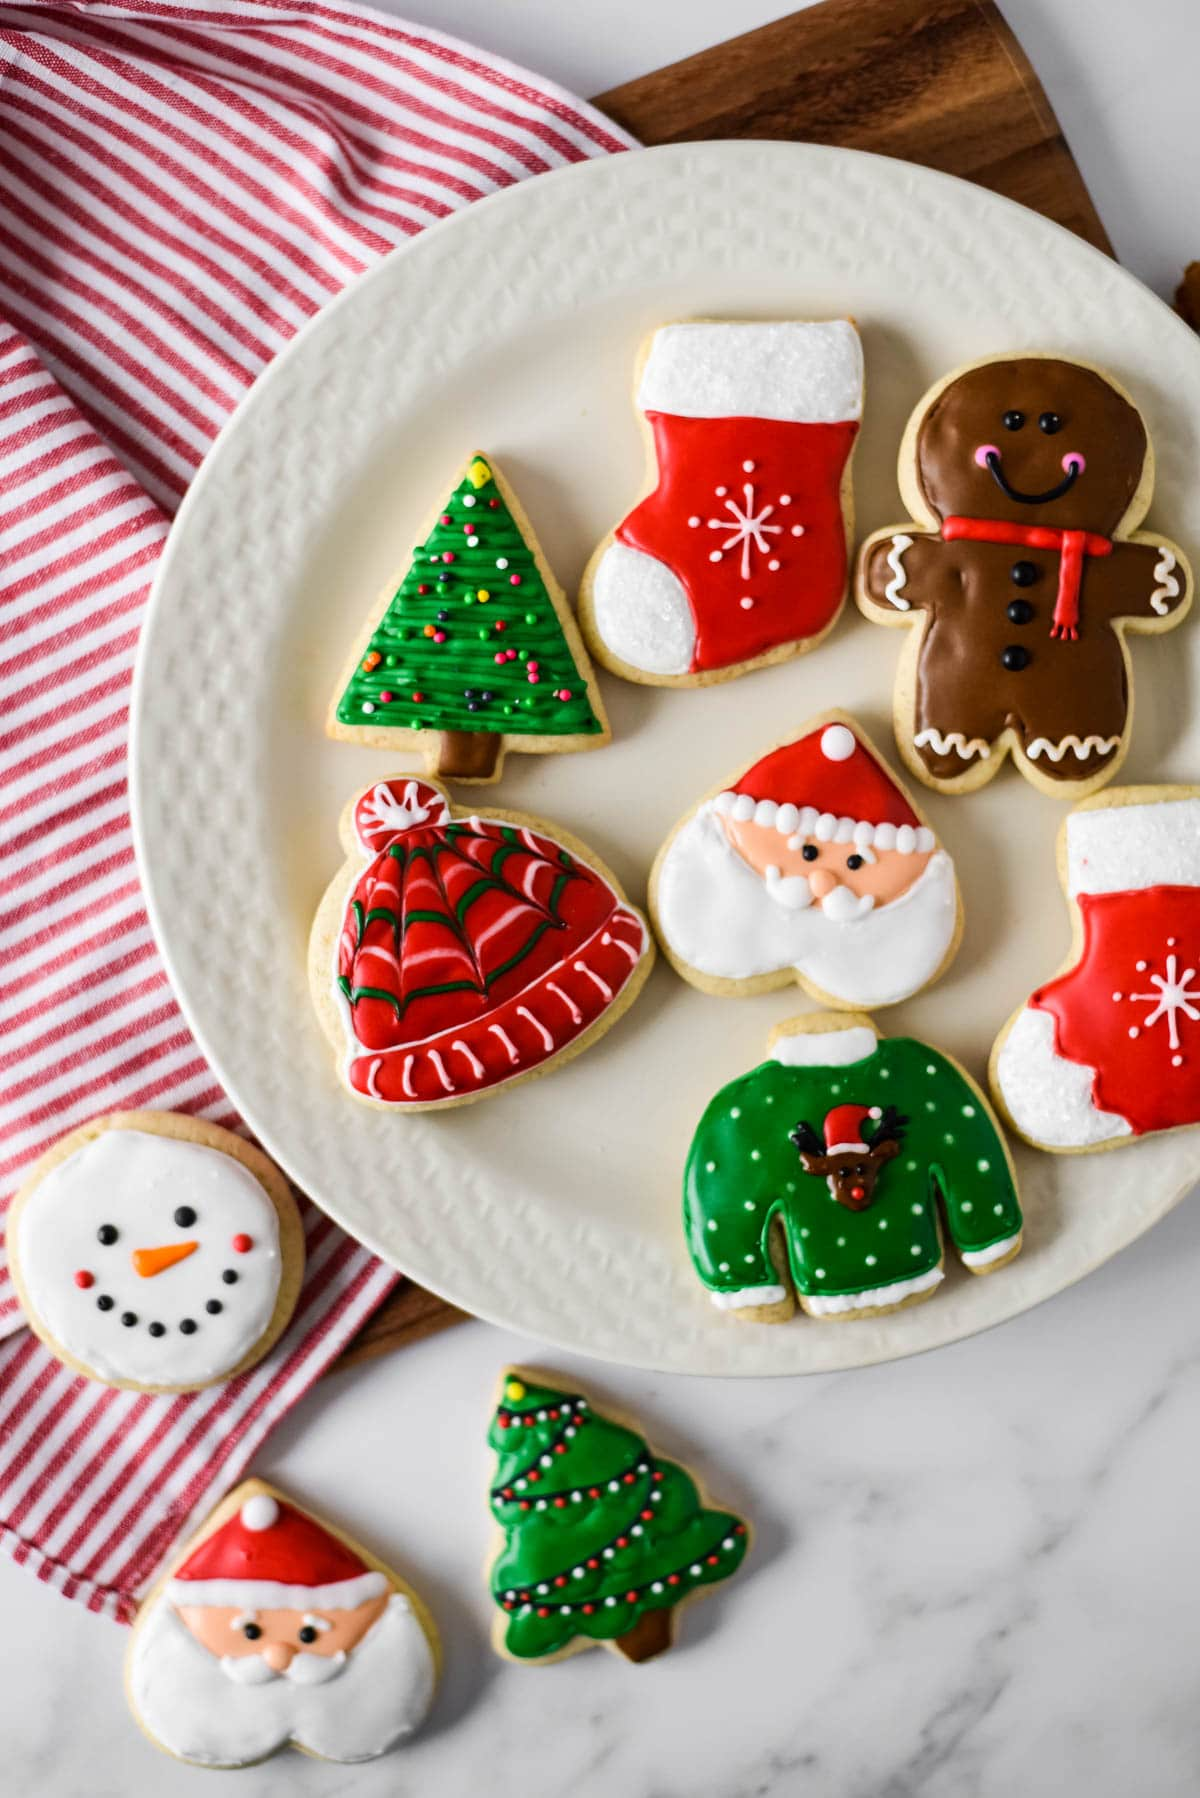 sourdough cut out cookies decorated for Christmas on a white plate beside red white striped towel